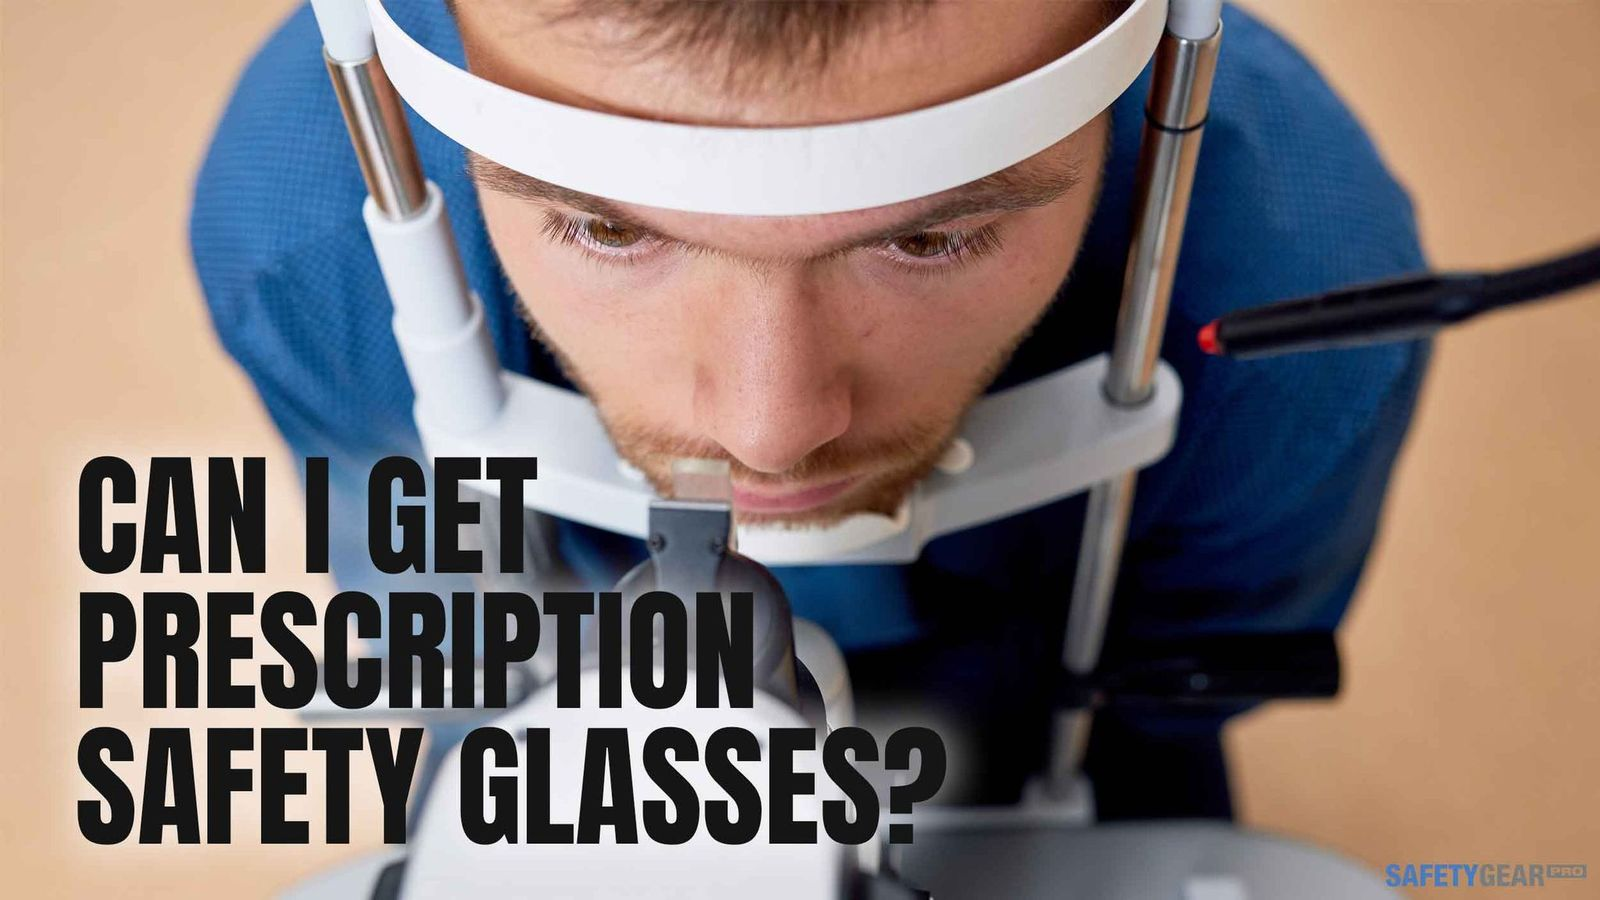 Prescription Safety Glasses Online Header